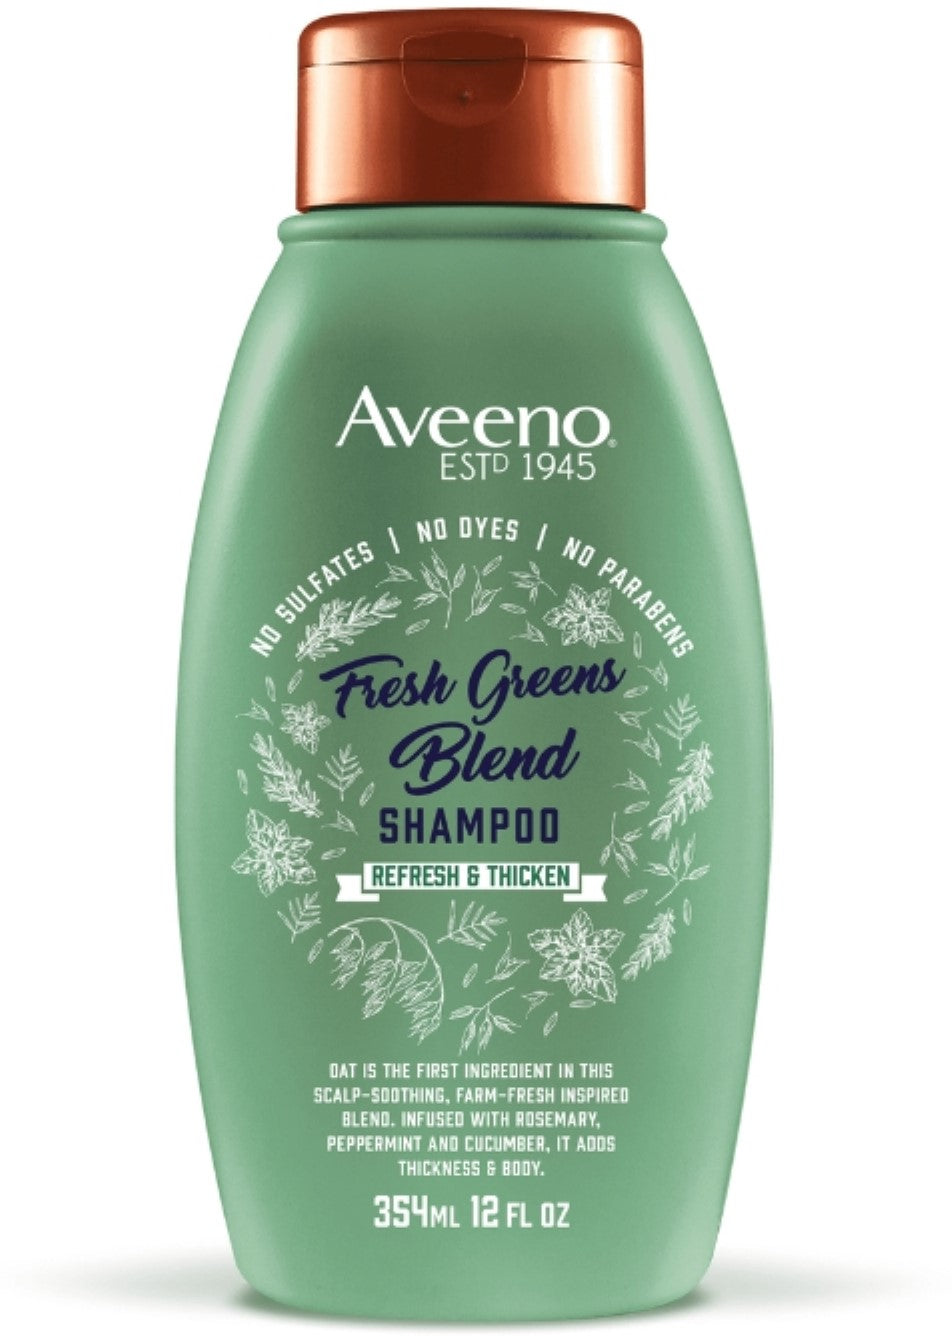 AVEENO SCALP SOOTHING FRESH GREENS BLEND SHAMPOO, WITH ROSEMARY & PEPPERMINT (12 Fl Oz)